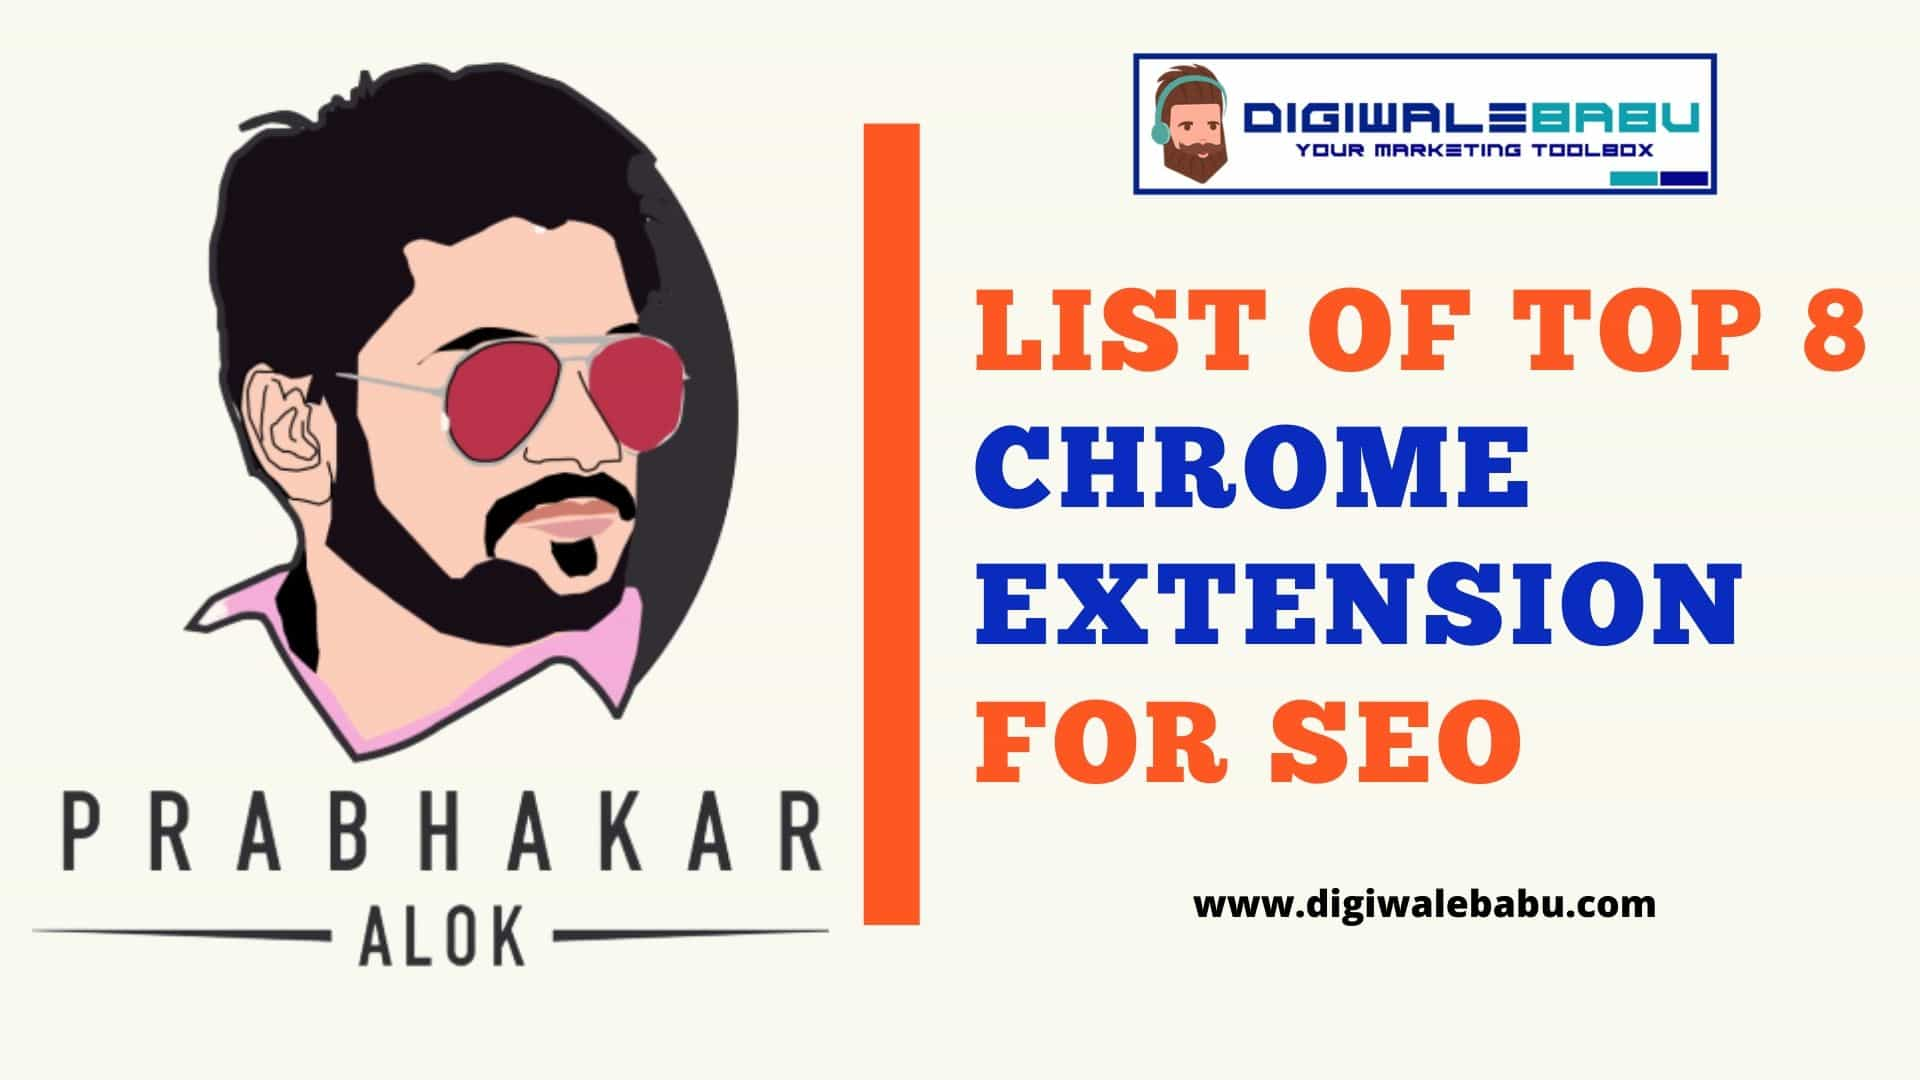 List of Top 8 Chrome Extension for SEO